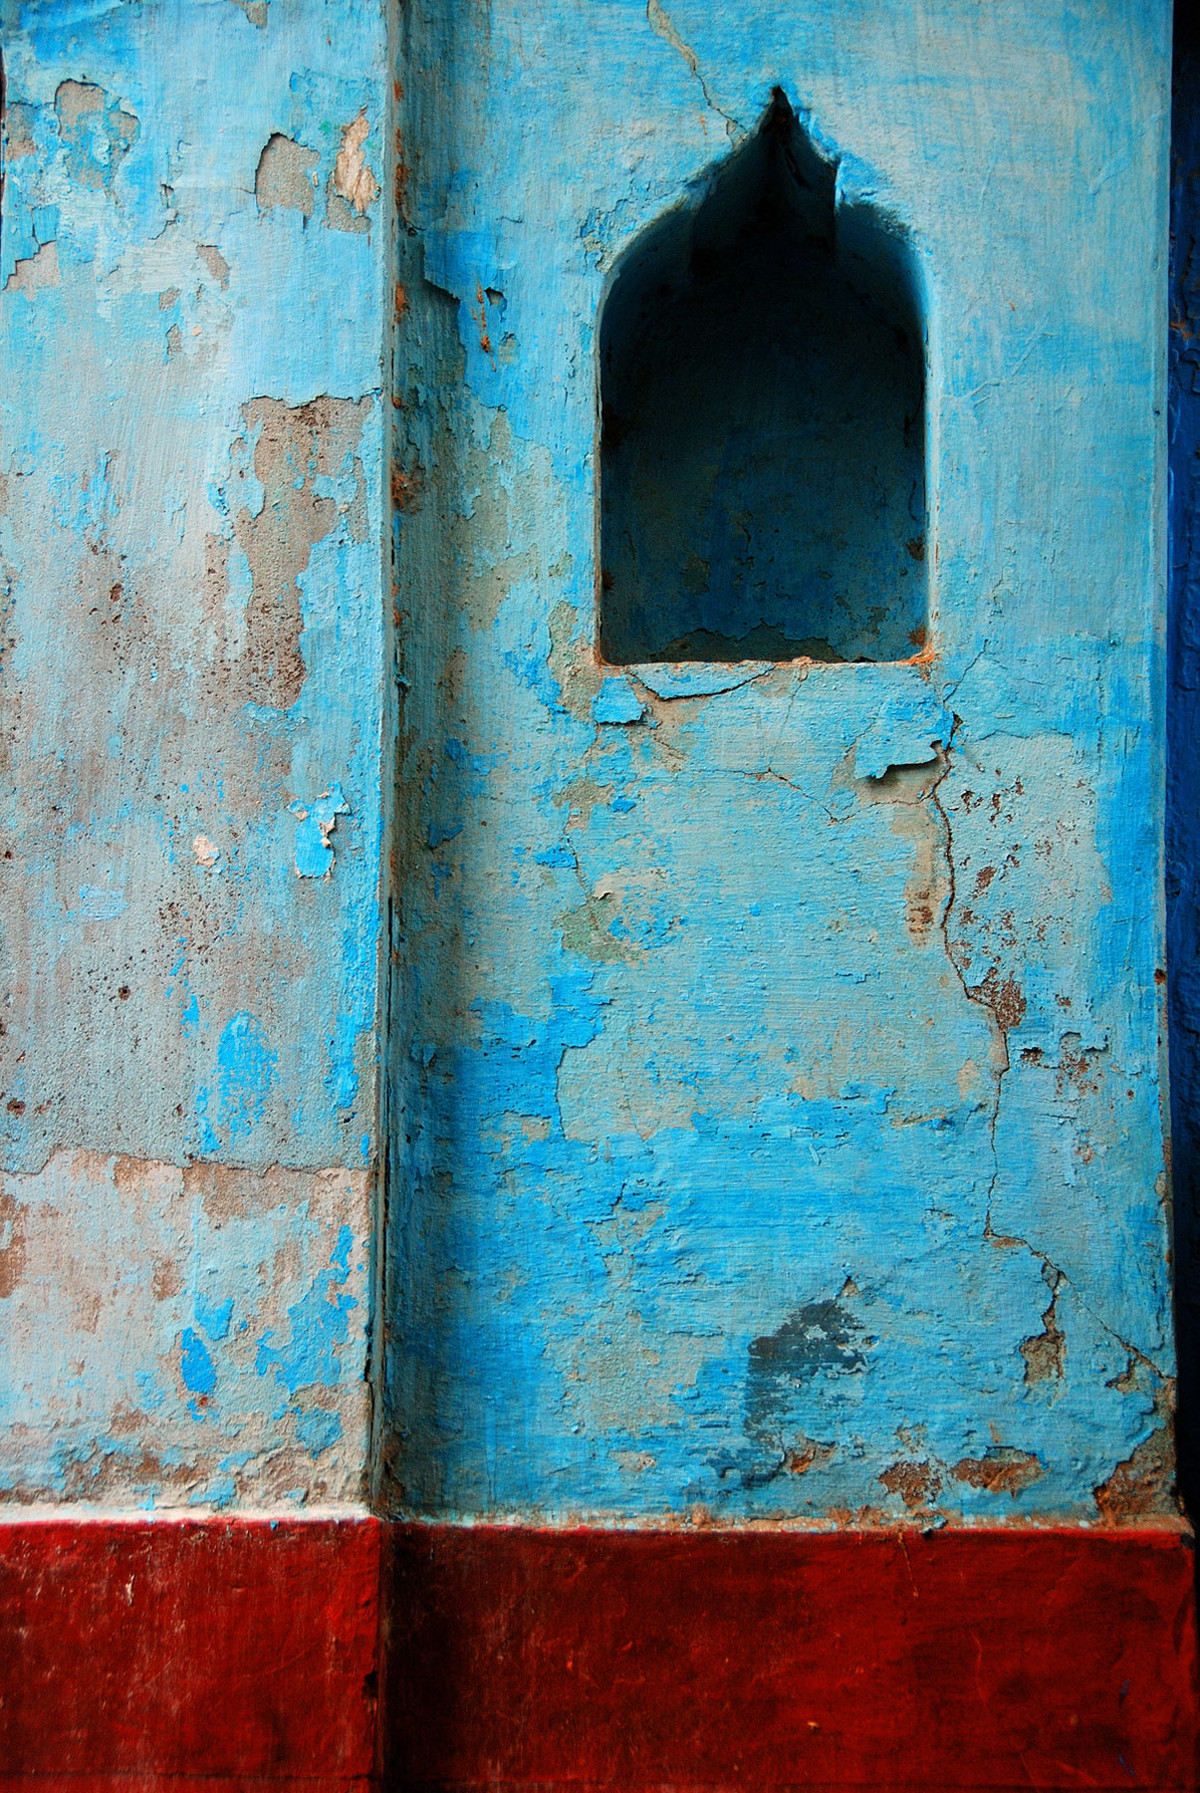 The Lonely Niche by Ajay Rajgarhia, Image Photography, Digital Print on Archival Paper, Cyan color